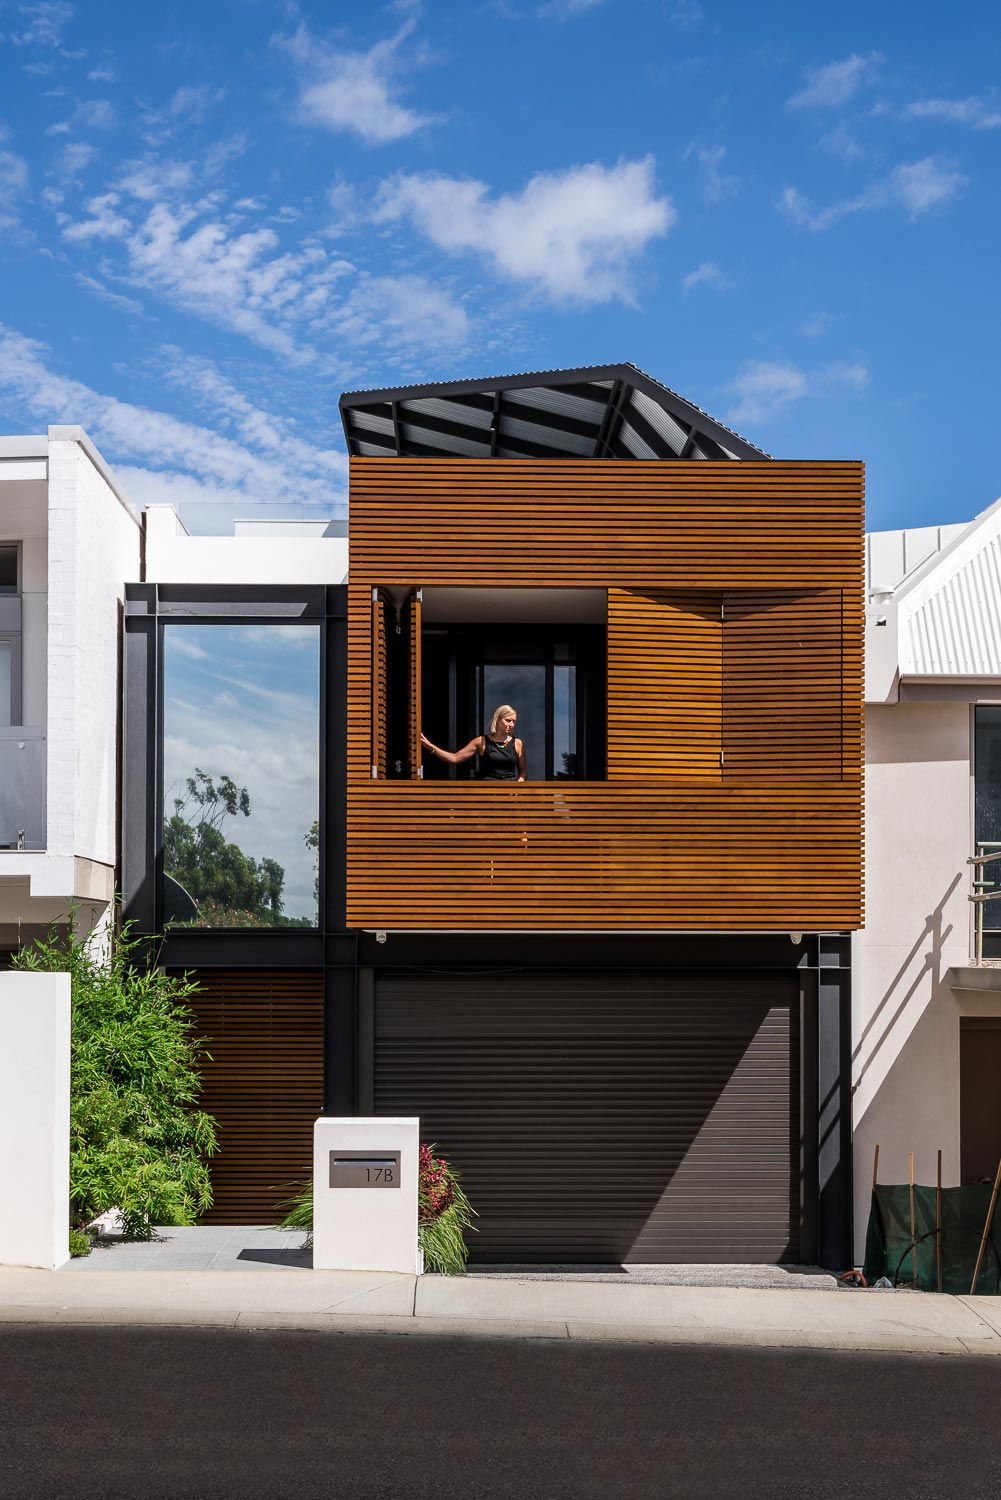 Claremont Contemporary Residence in Perth designed by Keen Architecture